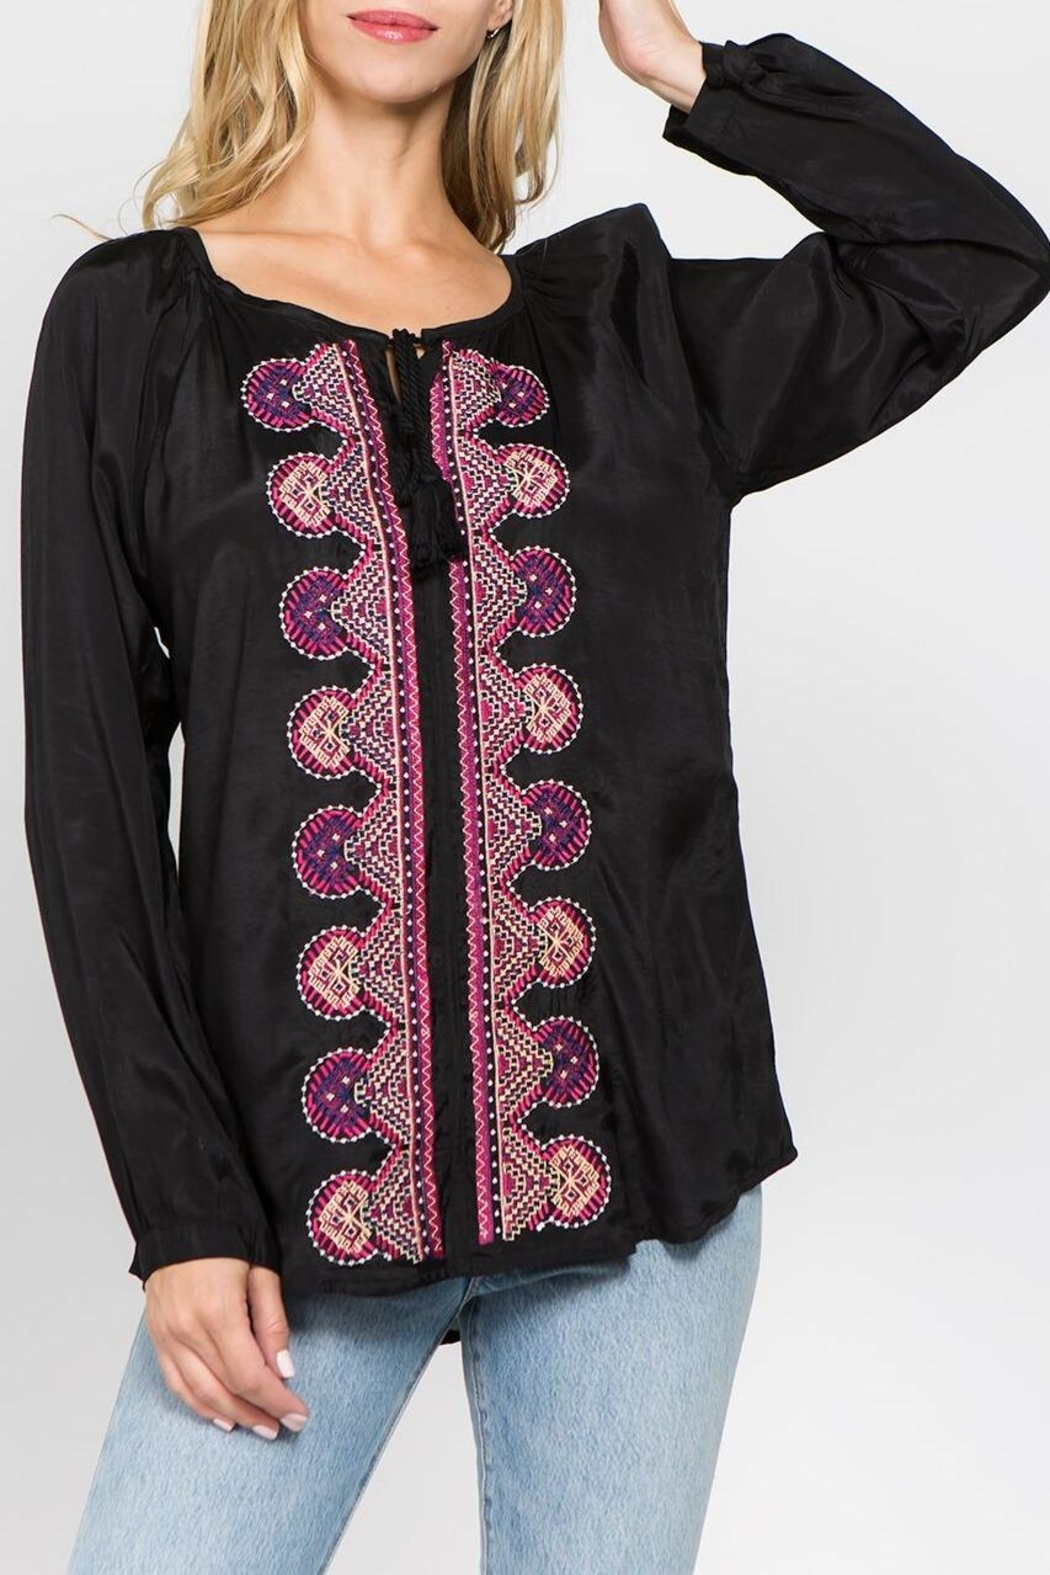 A&A Embroidered Peasant Blouse - Main Image